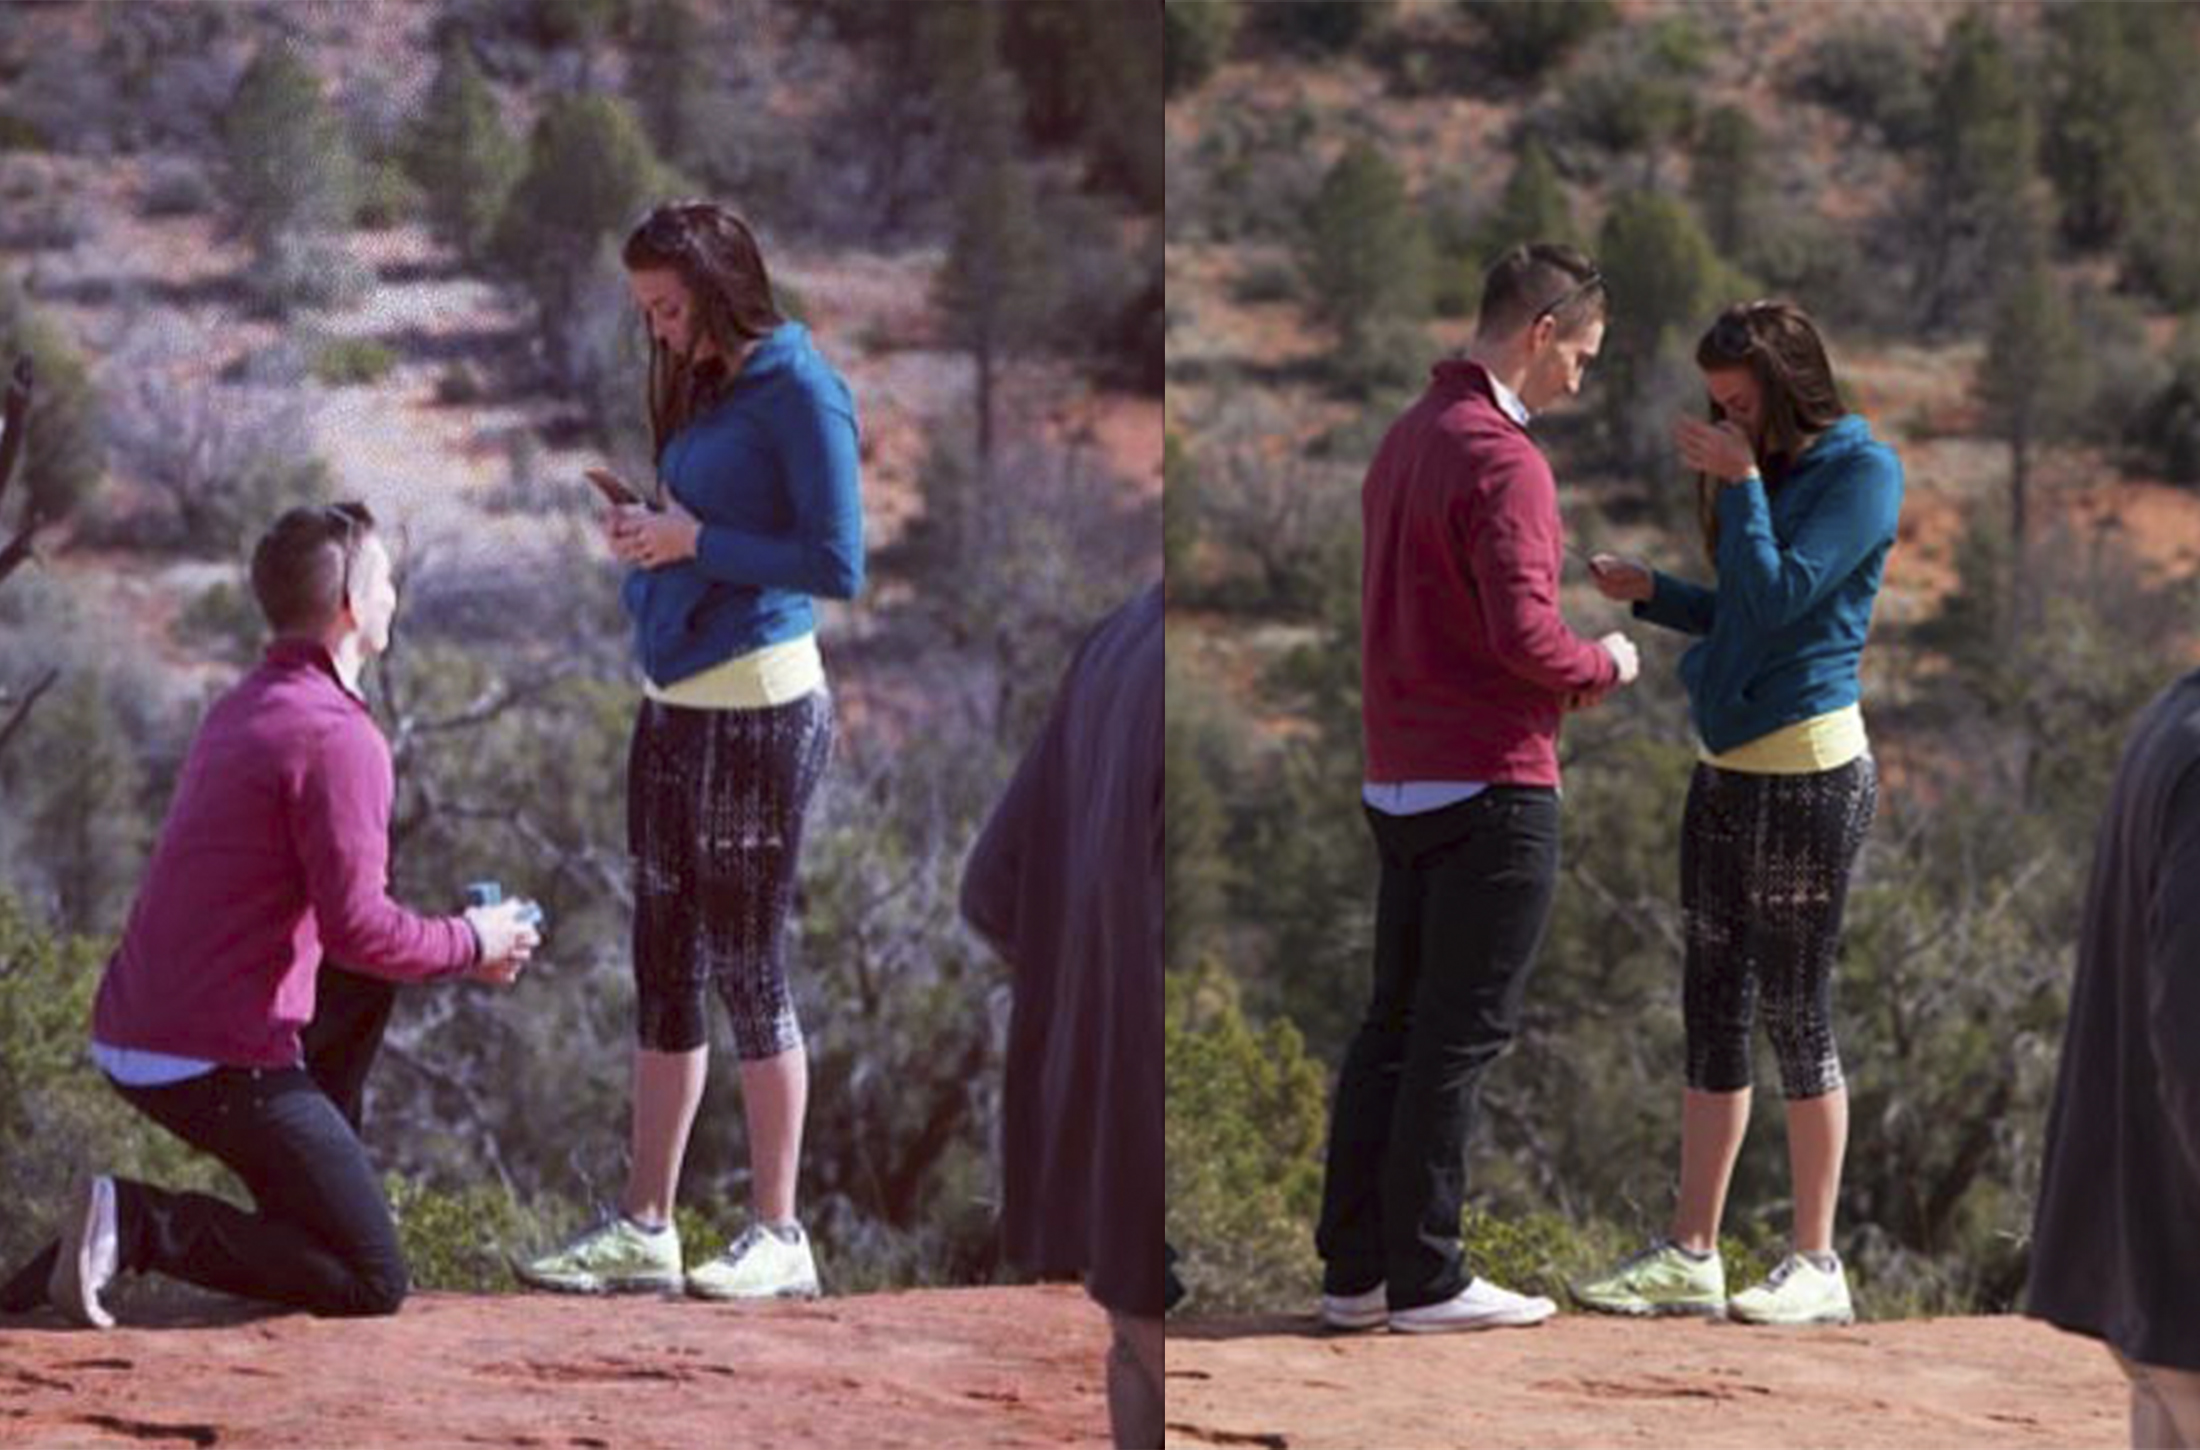 Image 5 of Whitney and Taylor's Proposal in Sedona